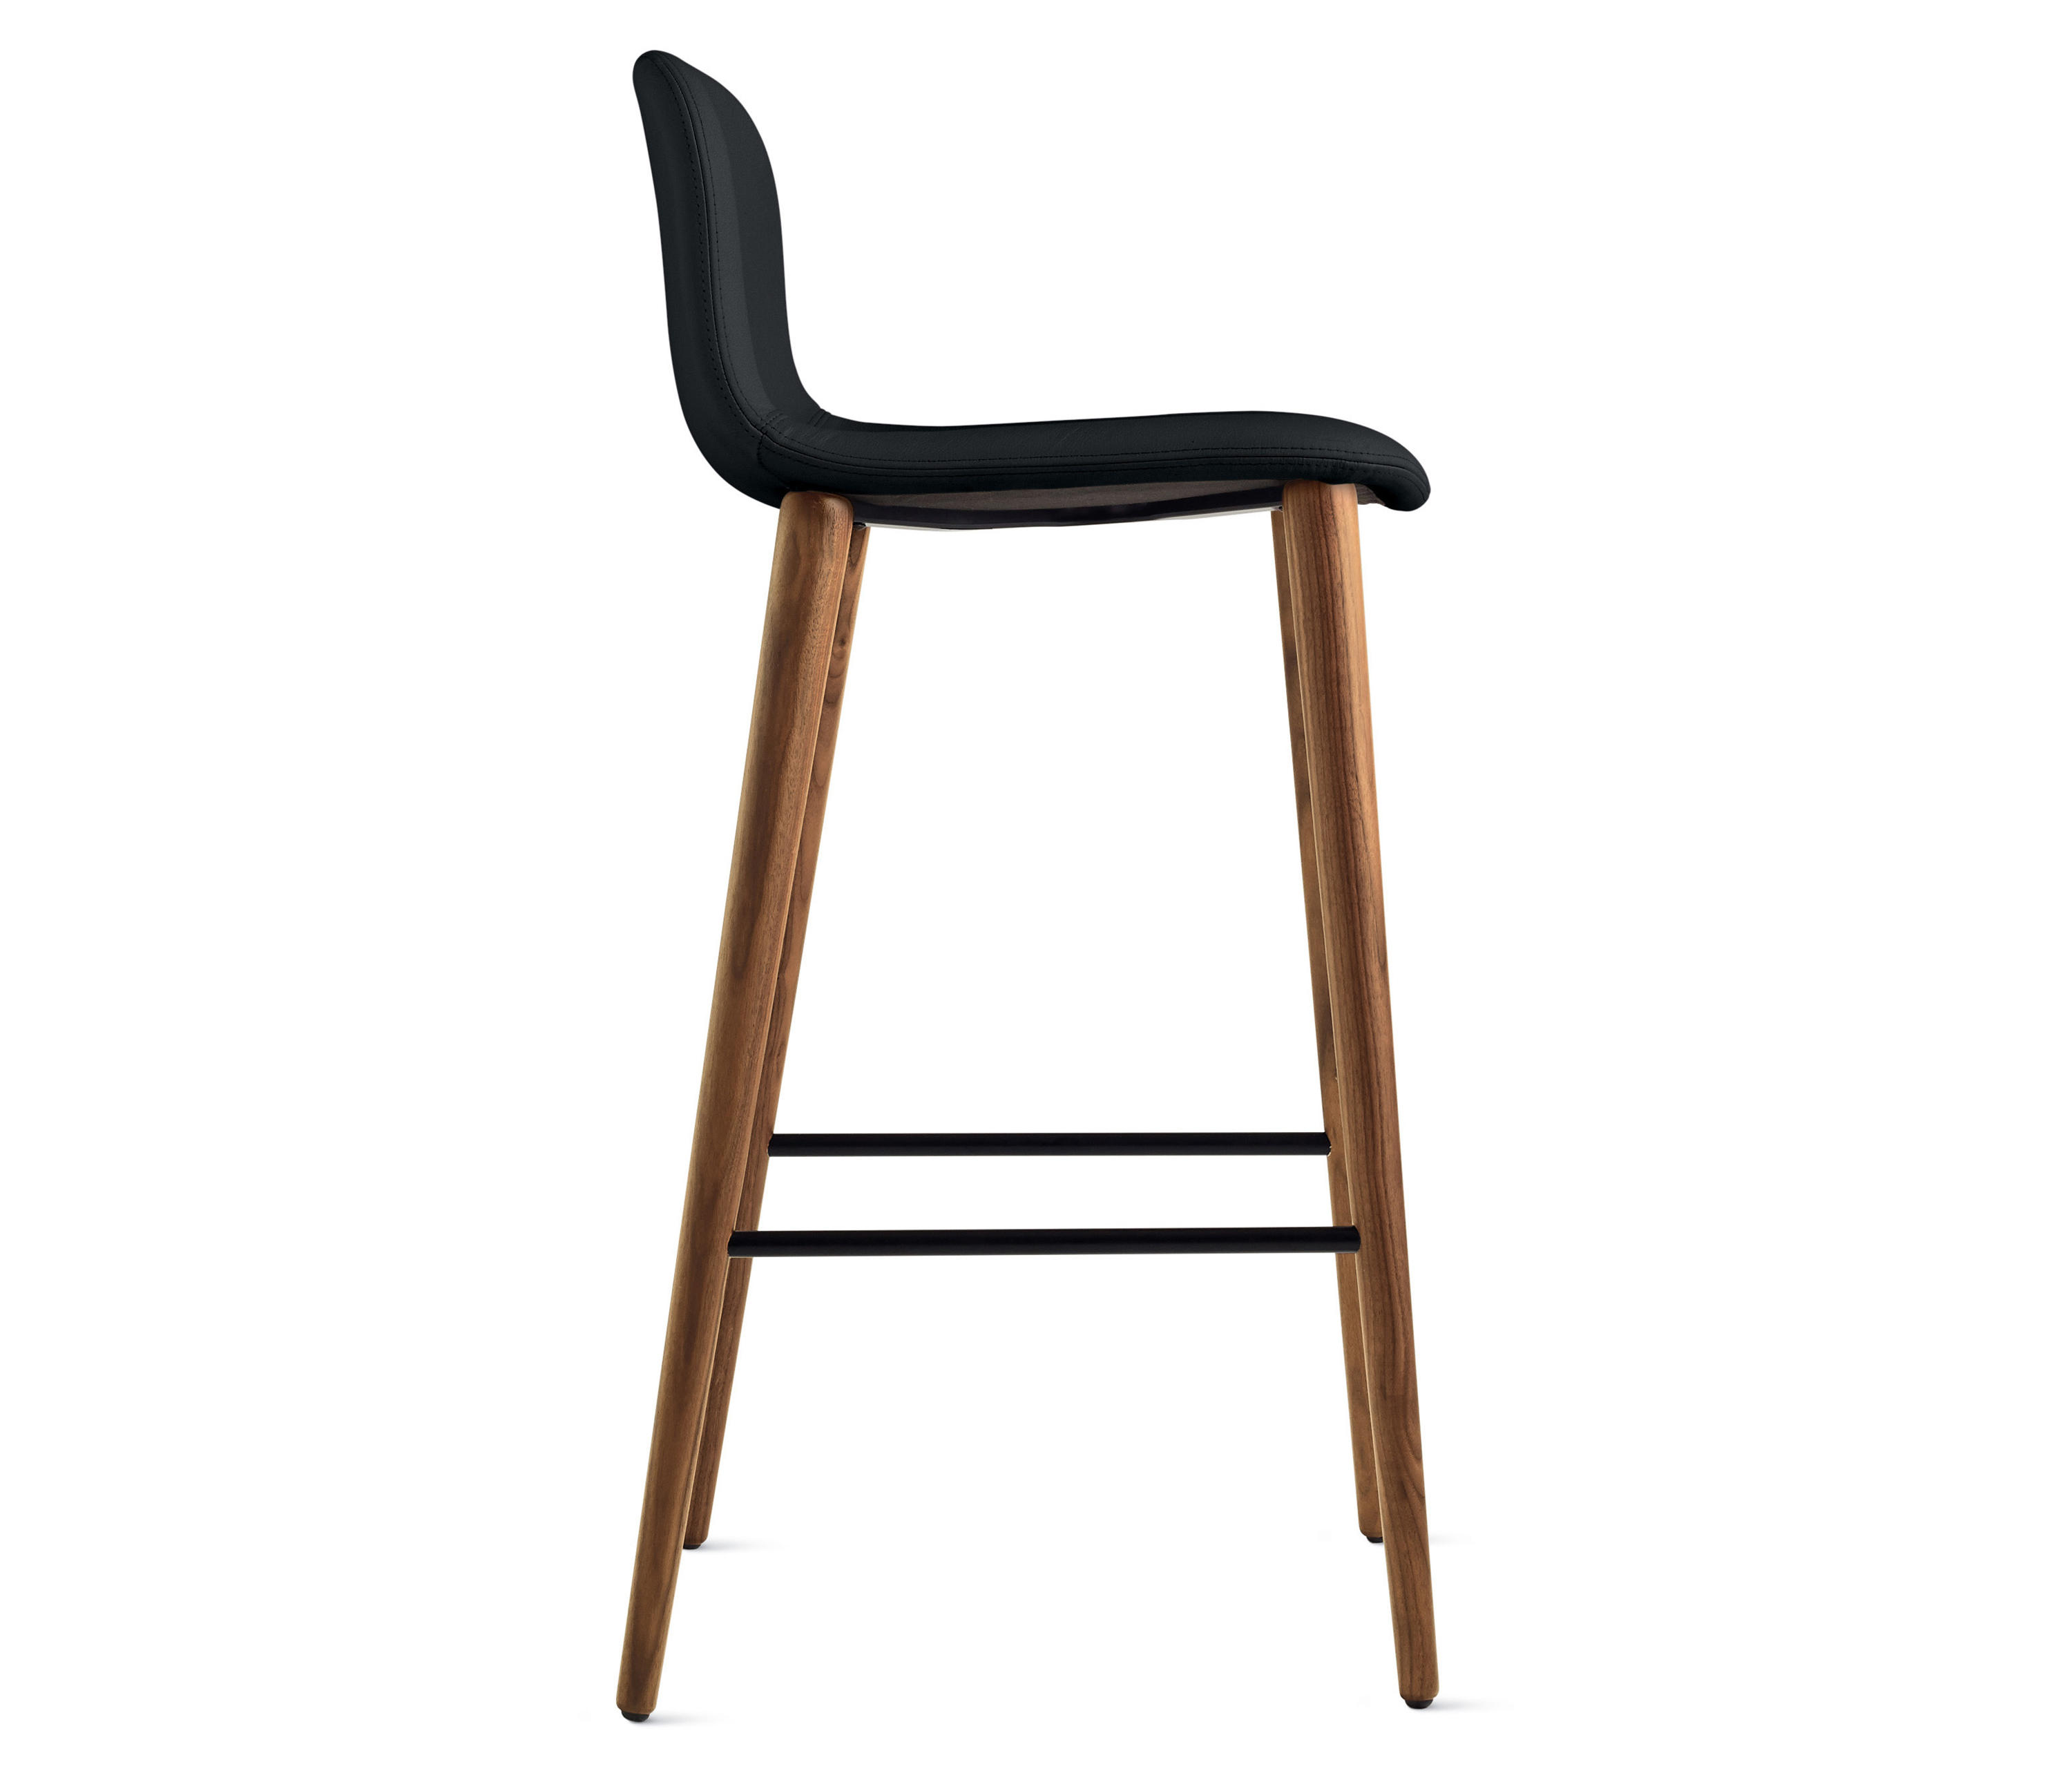 Admirable Bacco Barstool Bar Stools From Design Within Reach Onthecornerstone Fun Painted Chair Ideas Images Onthecornerstoneorg